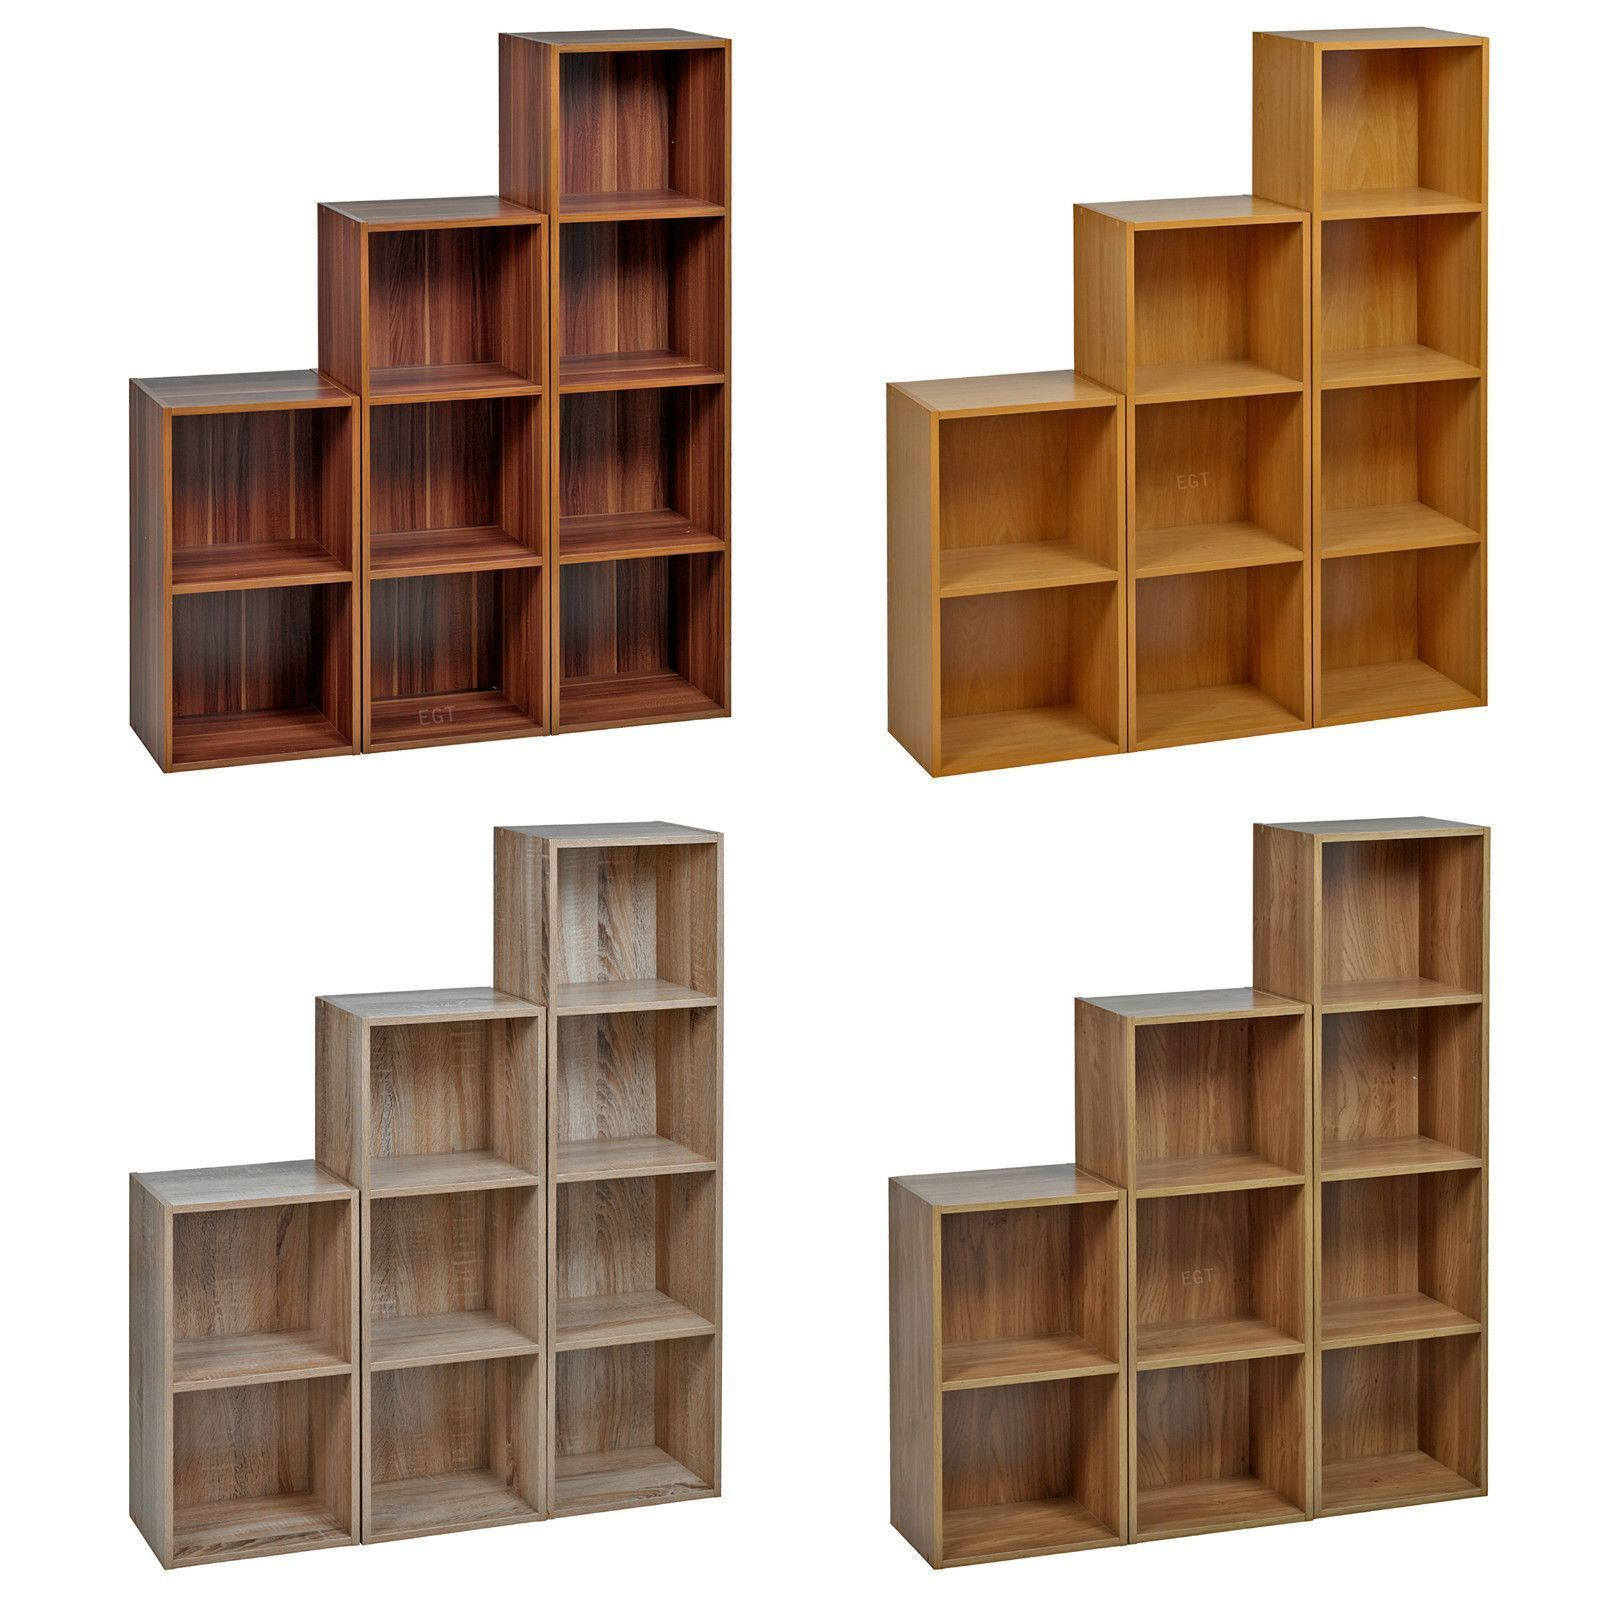 Details About 2, 3, 4 Tier Wooden Bookcase Shelving Display Storage Wood  Shelf Shelves Units